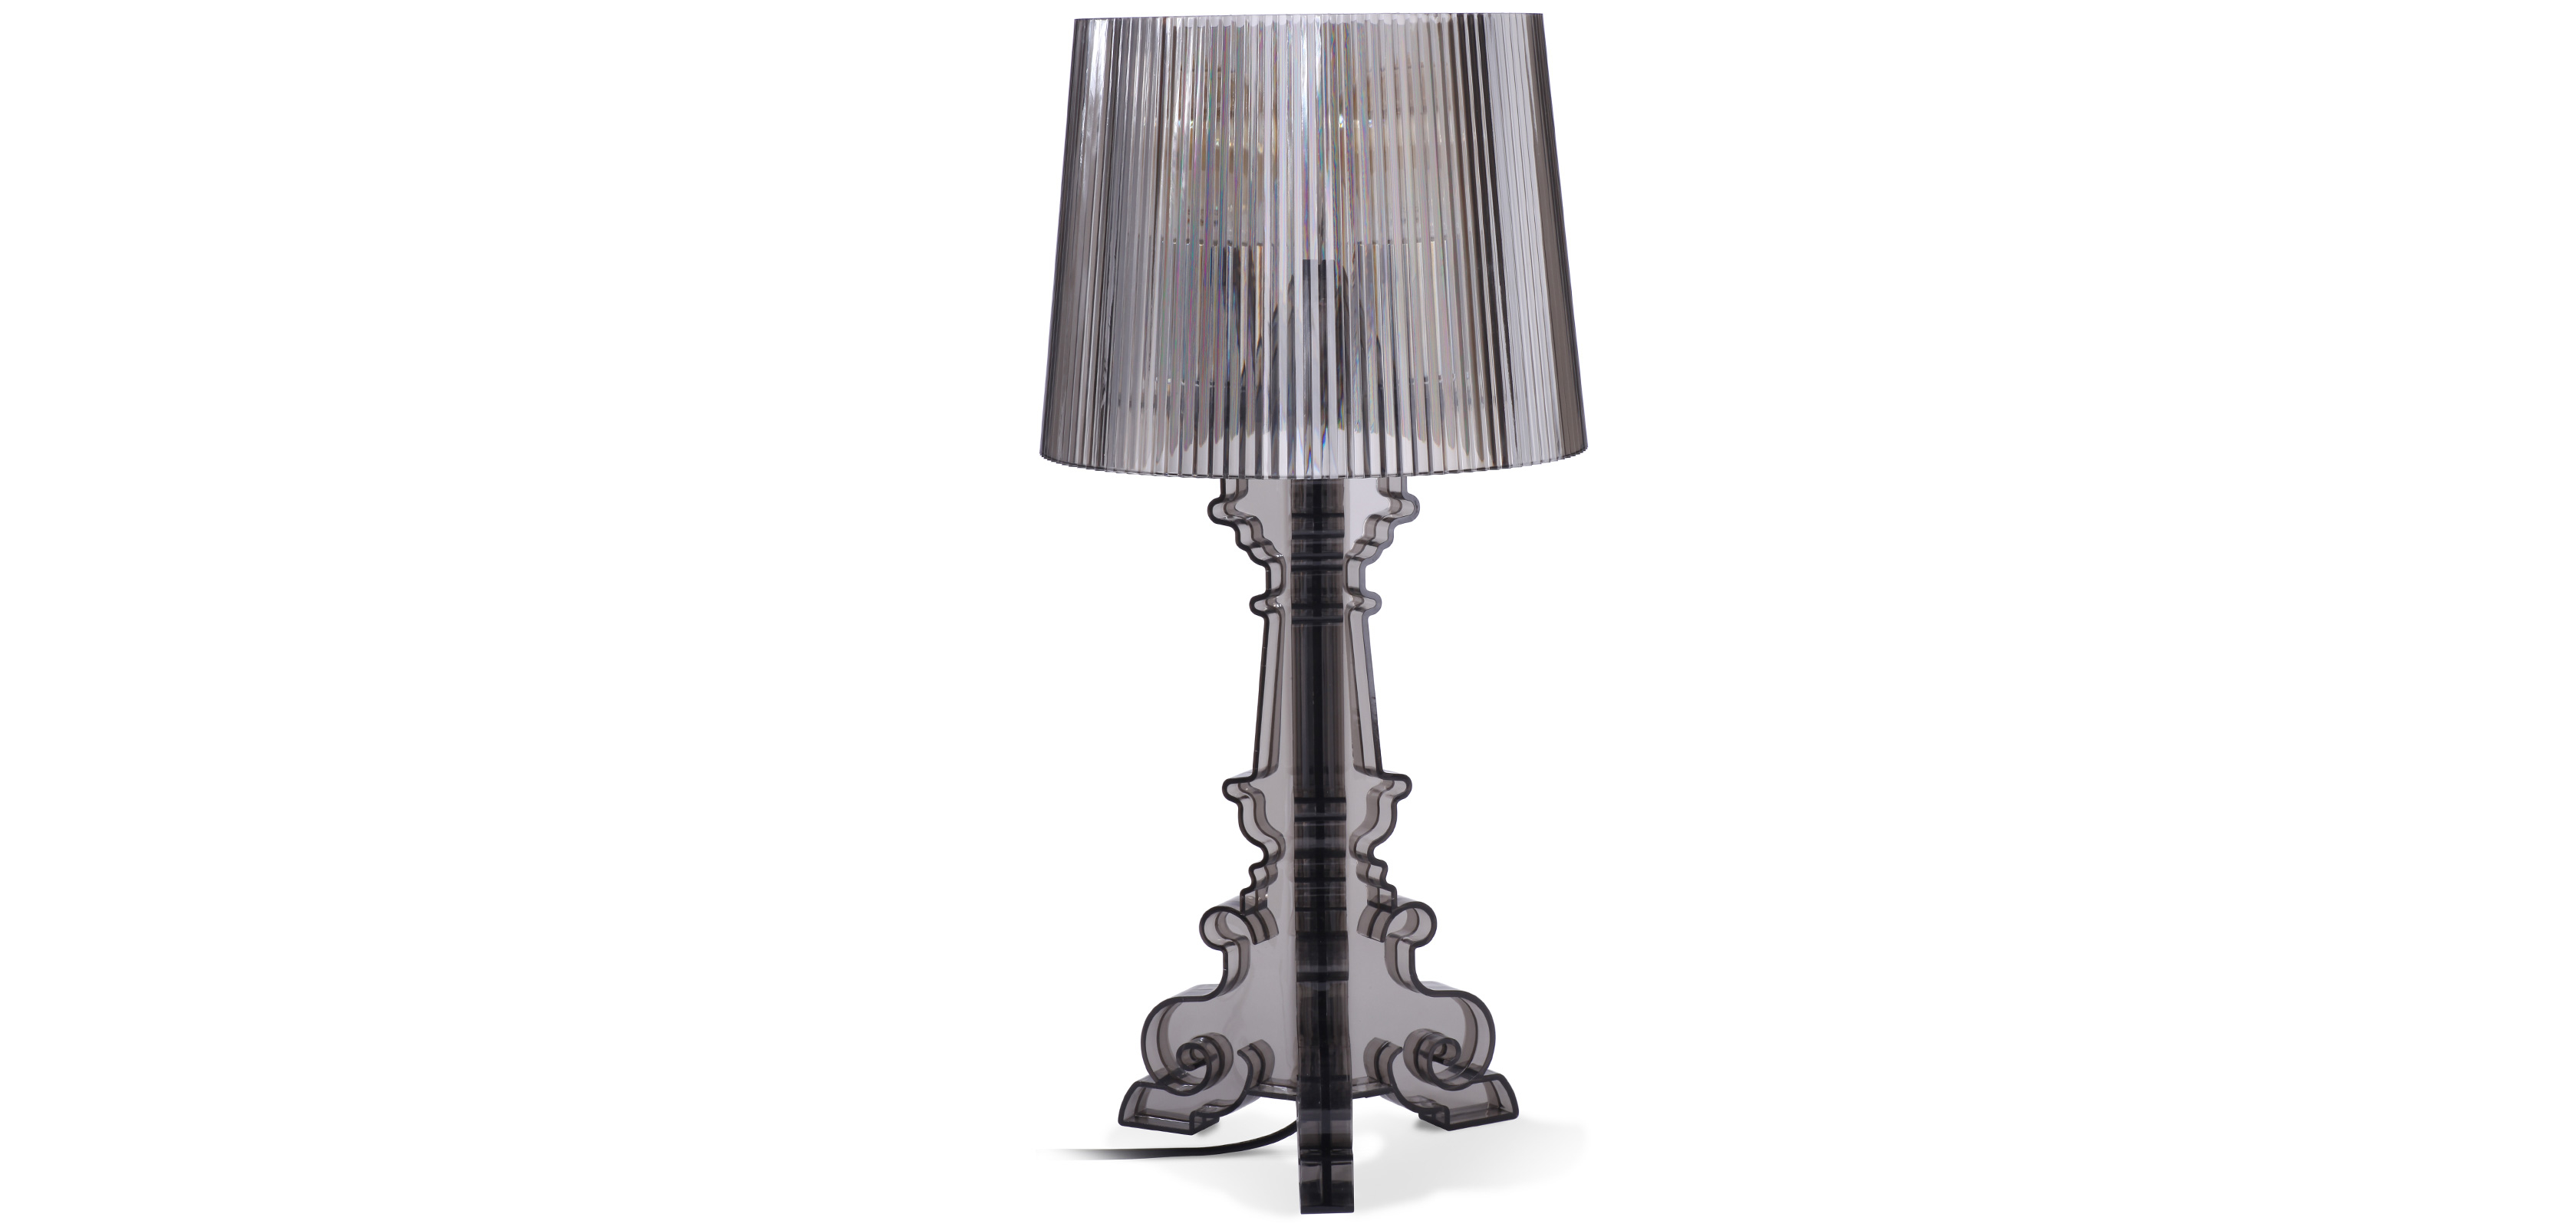 Buy Boure Table Lamp - Small Model Dark grey 29290 - in the UK